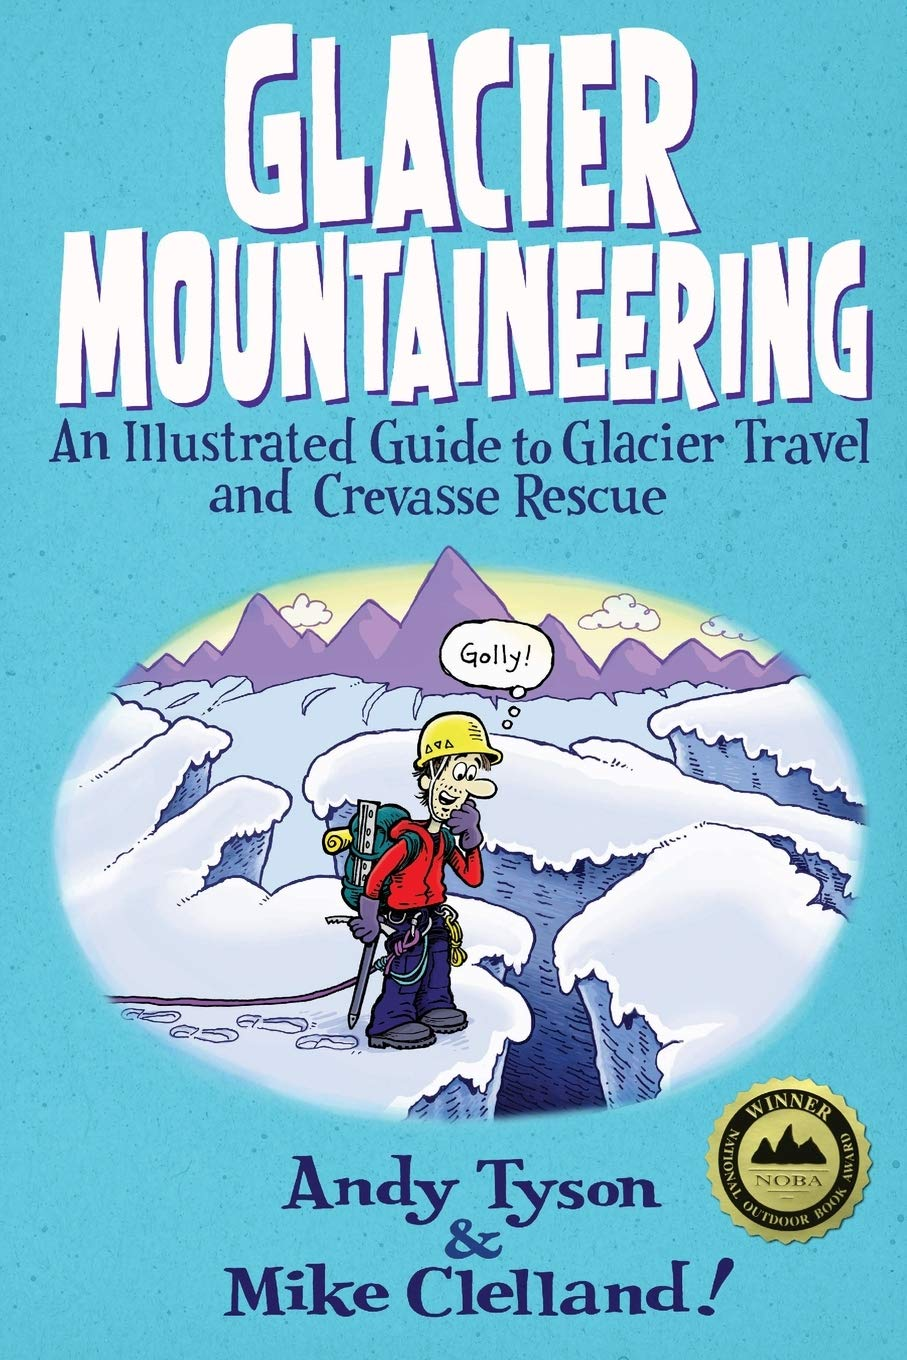 Download Glacier Mountaineering (How To Climb Series) Idioma Inglés]: An Illustrated Guide To Glacier Travel And Crevasse Rescue, ...